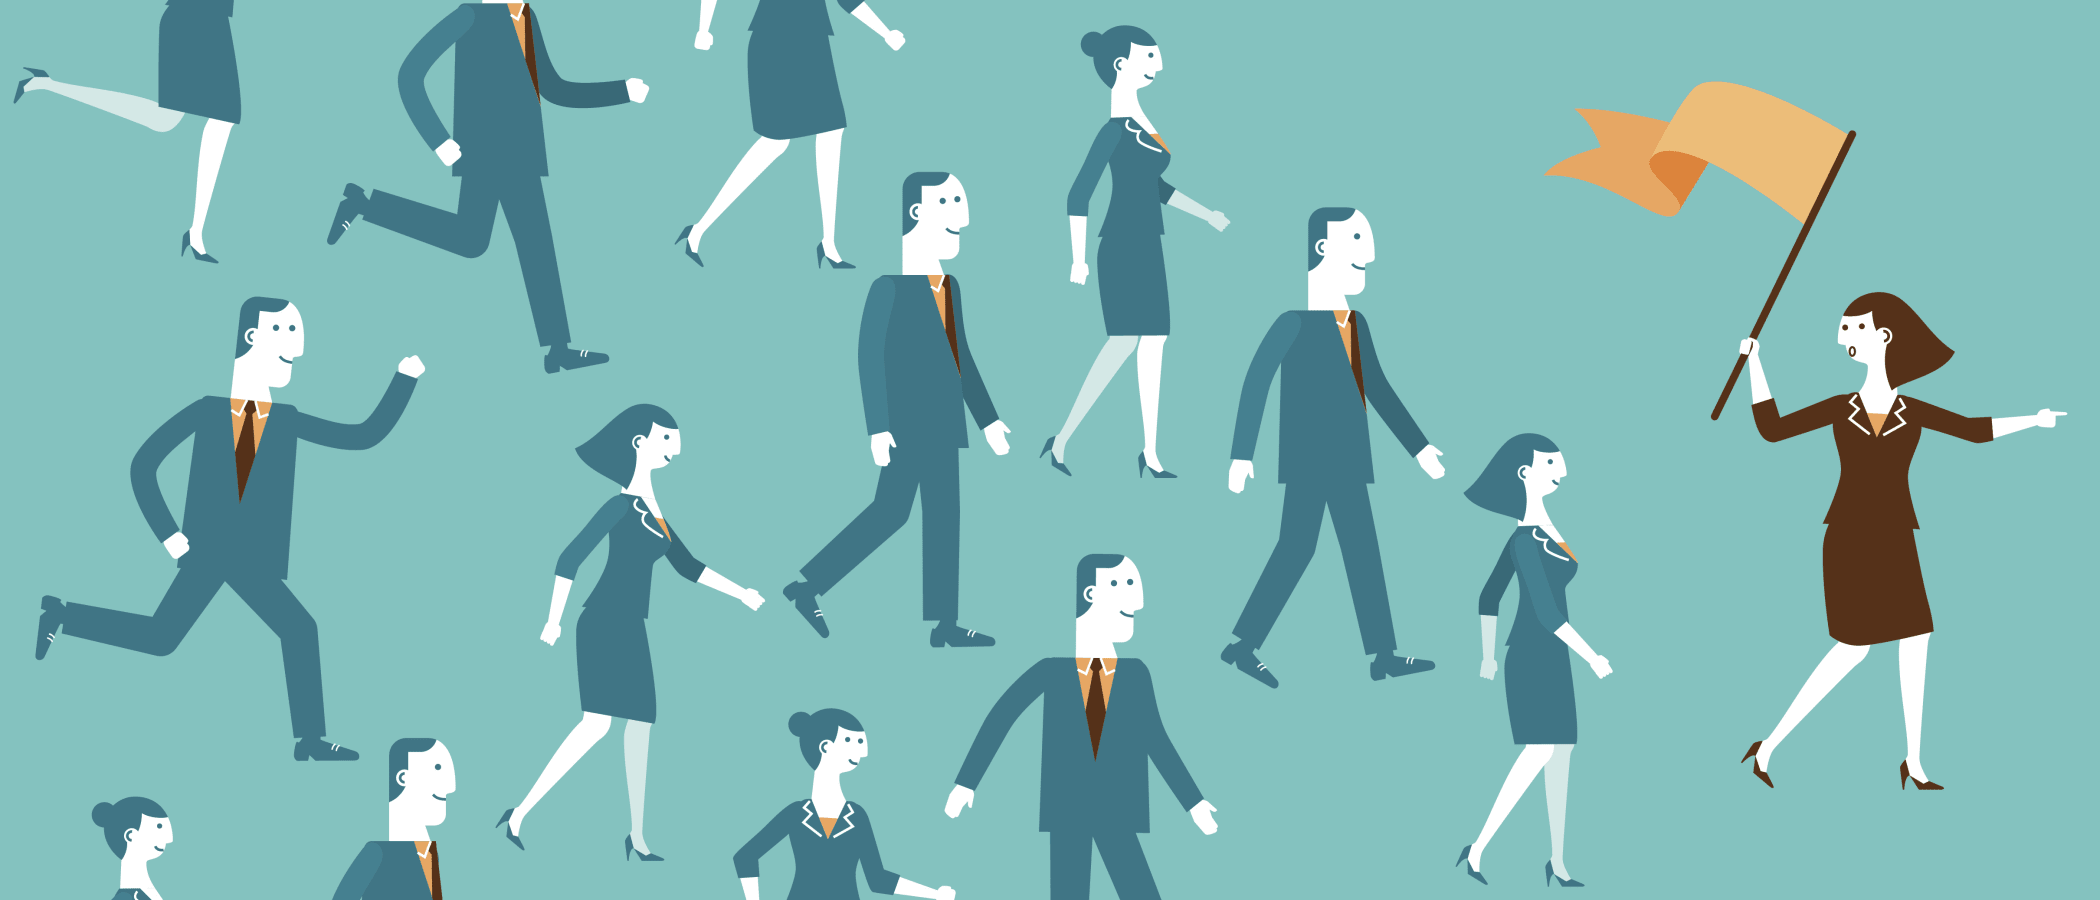 Should You Trust Your Gut in Hiring Decisions?